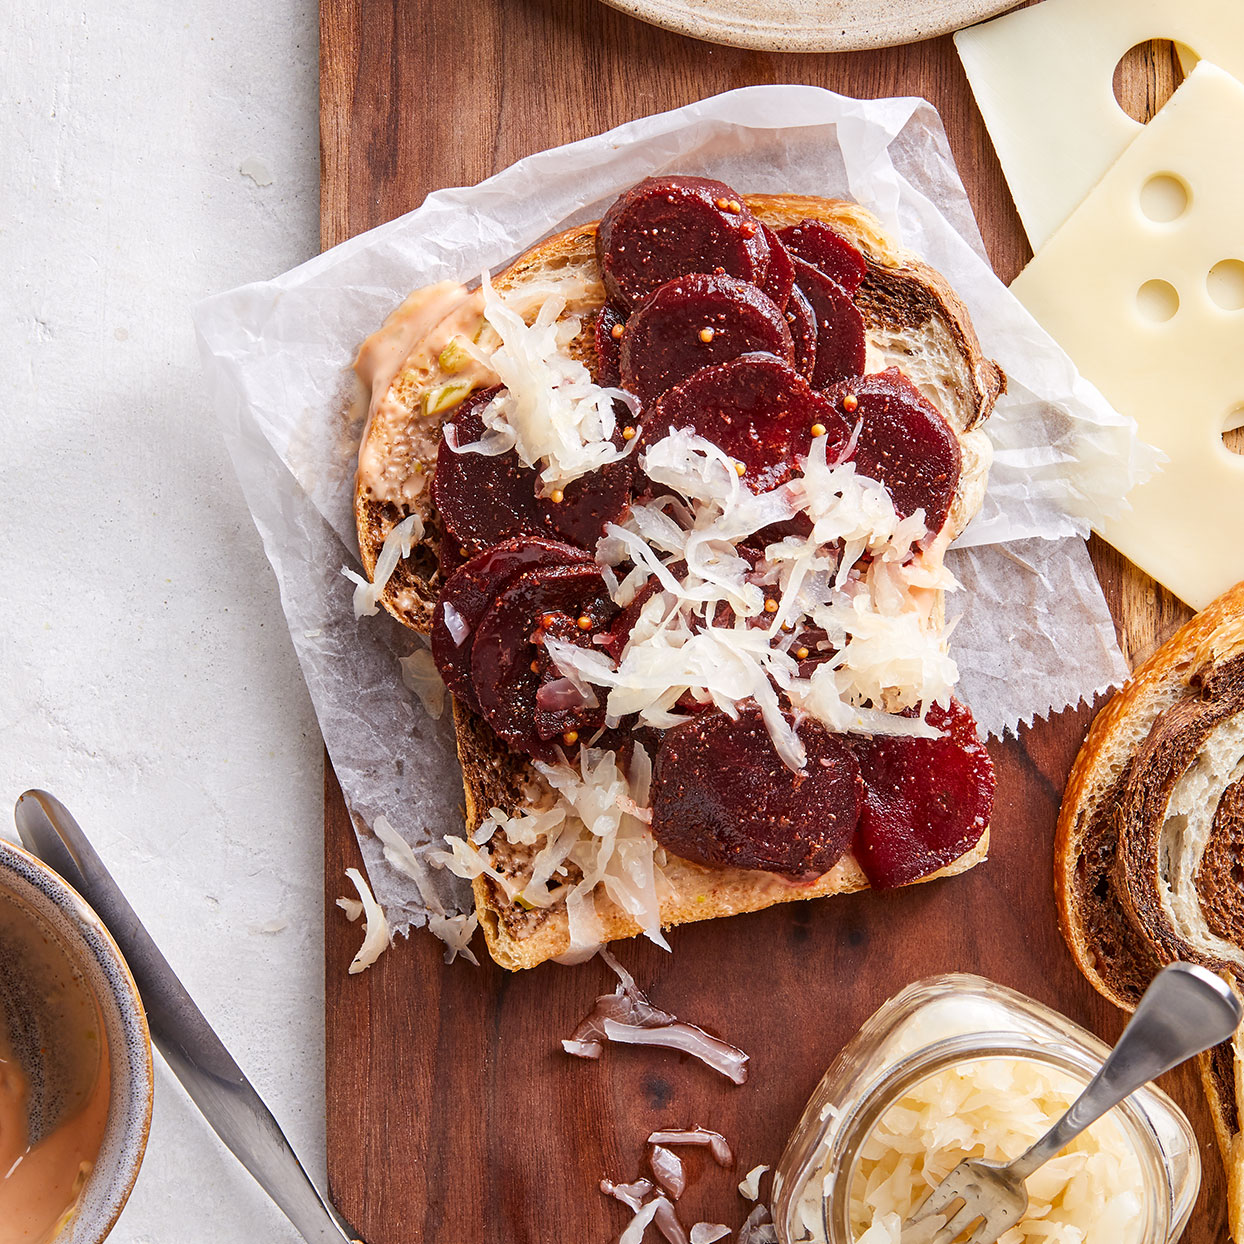 Tossing beets with coriander, mustard seeds, cinnamon and allspice gives them savory corned-beef flavor. With this vegetarian Reuben sandwich, you won't miss the meat. Source: EatingWell Magazine, November 2019